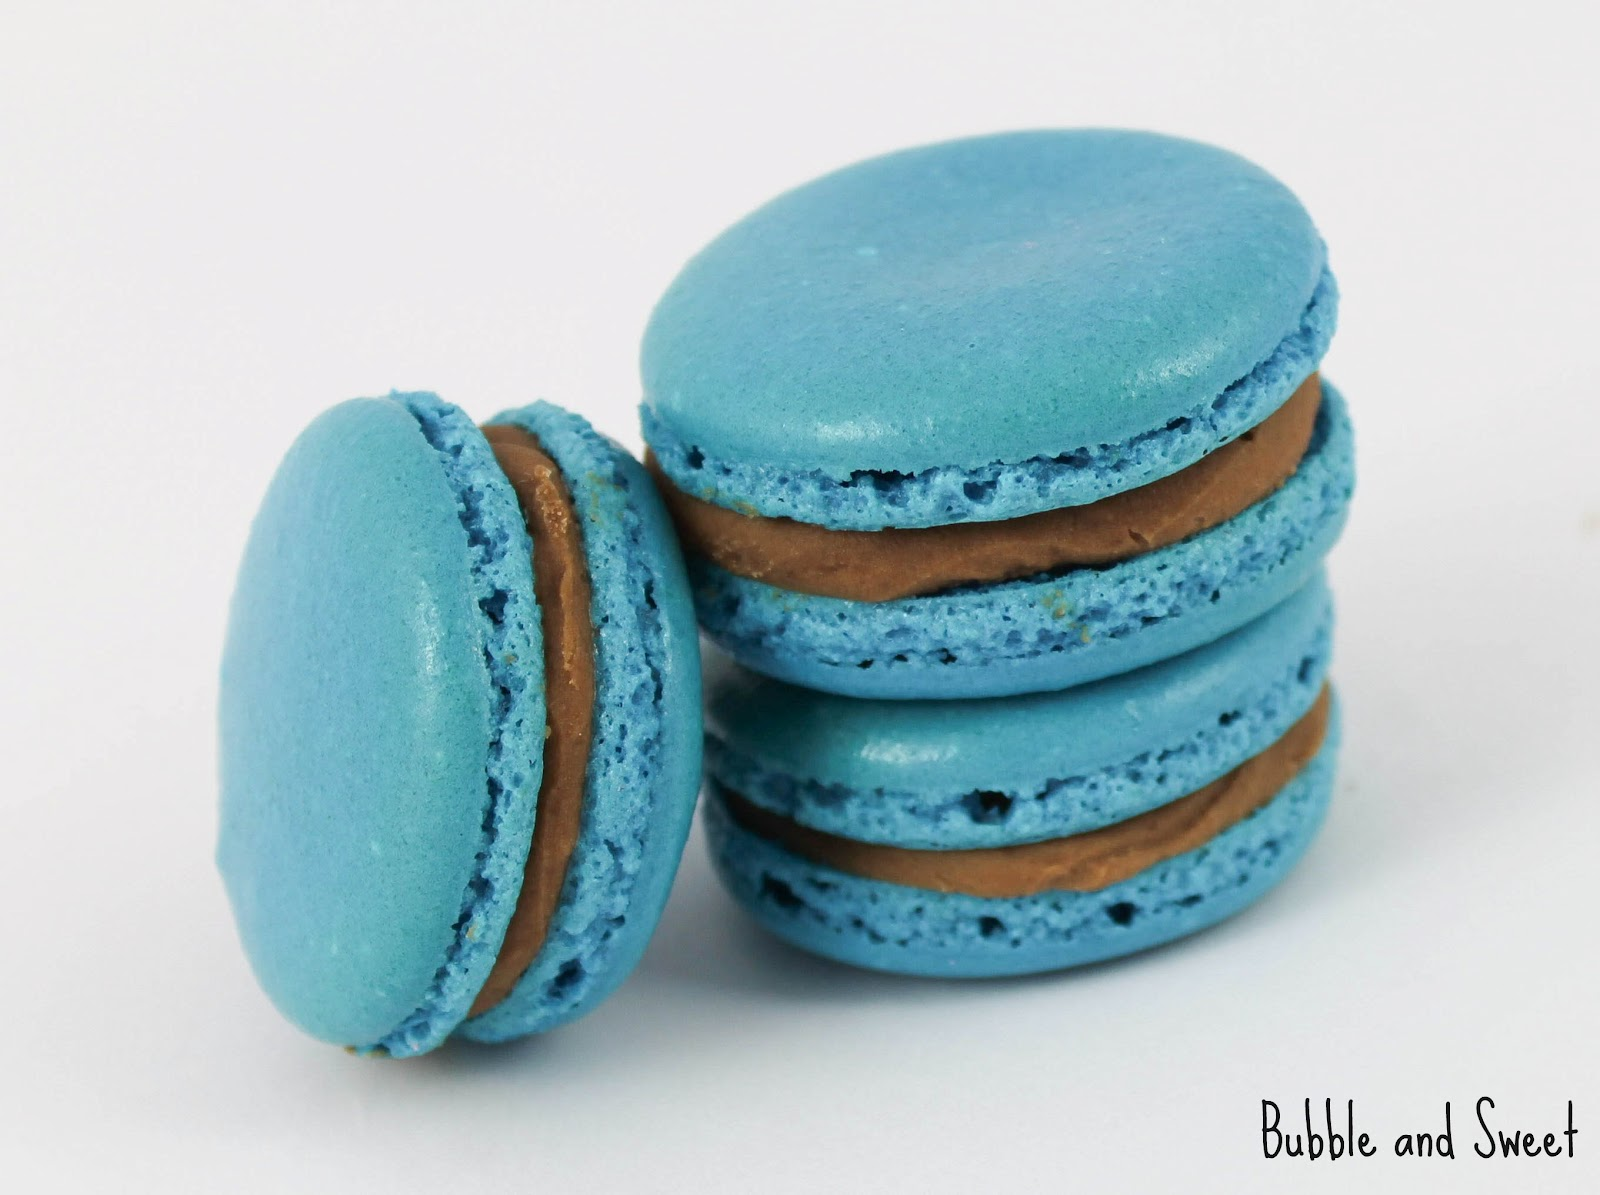 Bubble and Sweet: Peanut Butter Chocolate Ganache Blue French Macarons